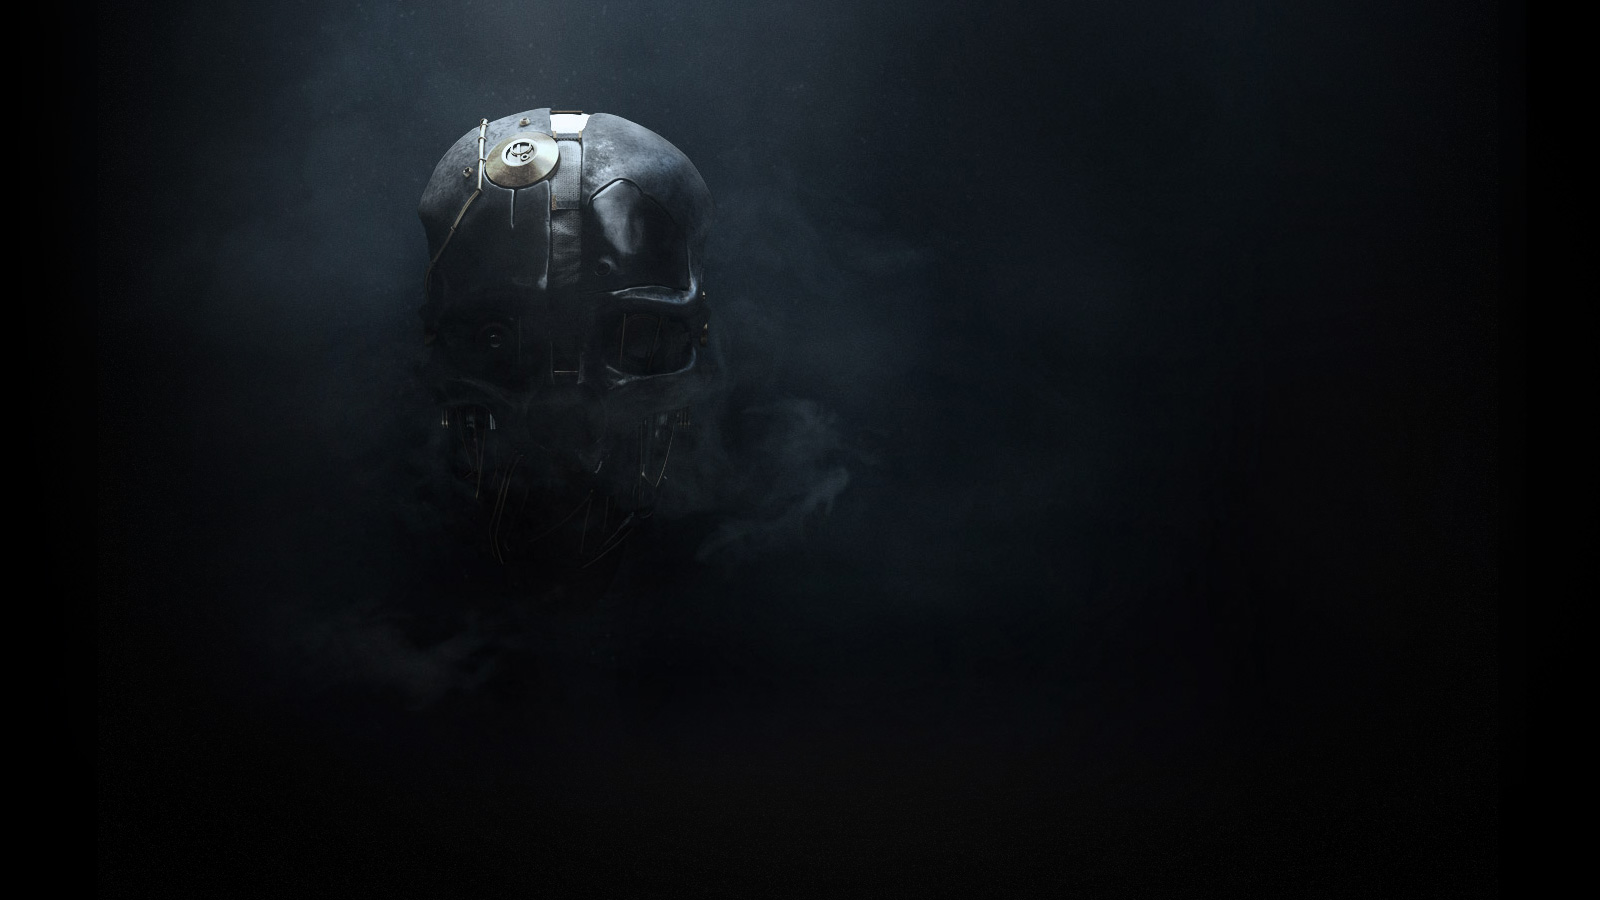 Dishonored Wallpaper And Background Image